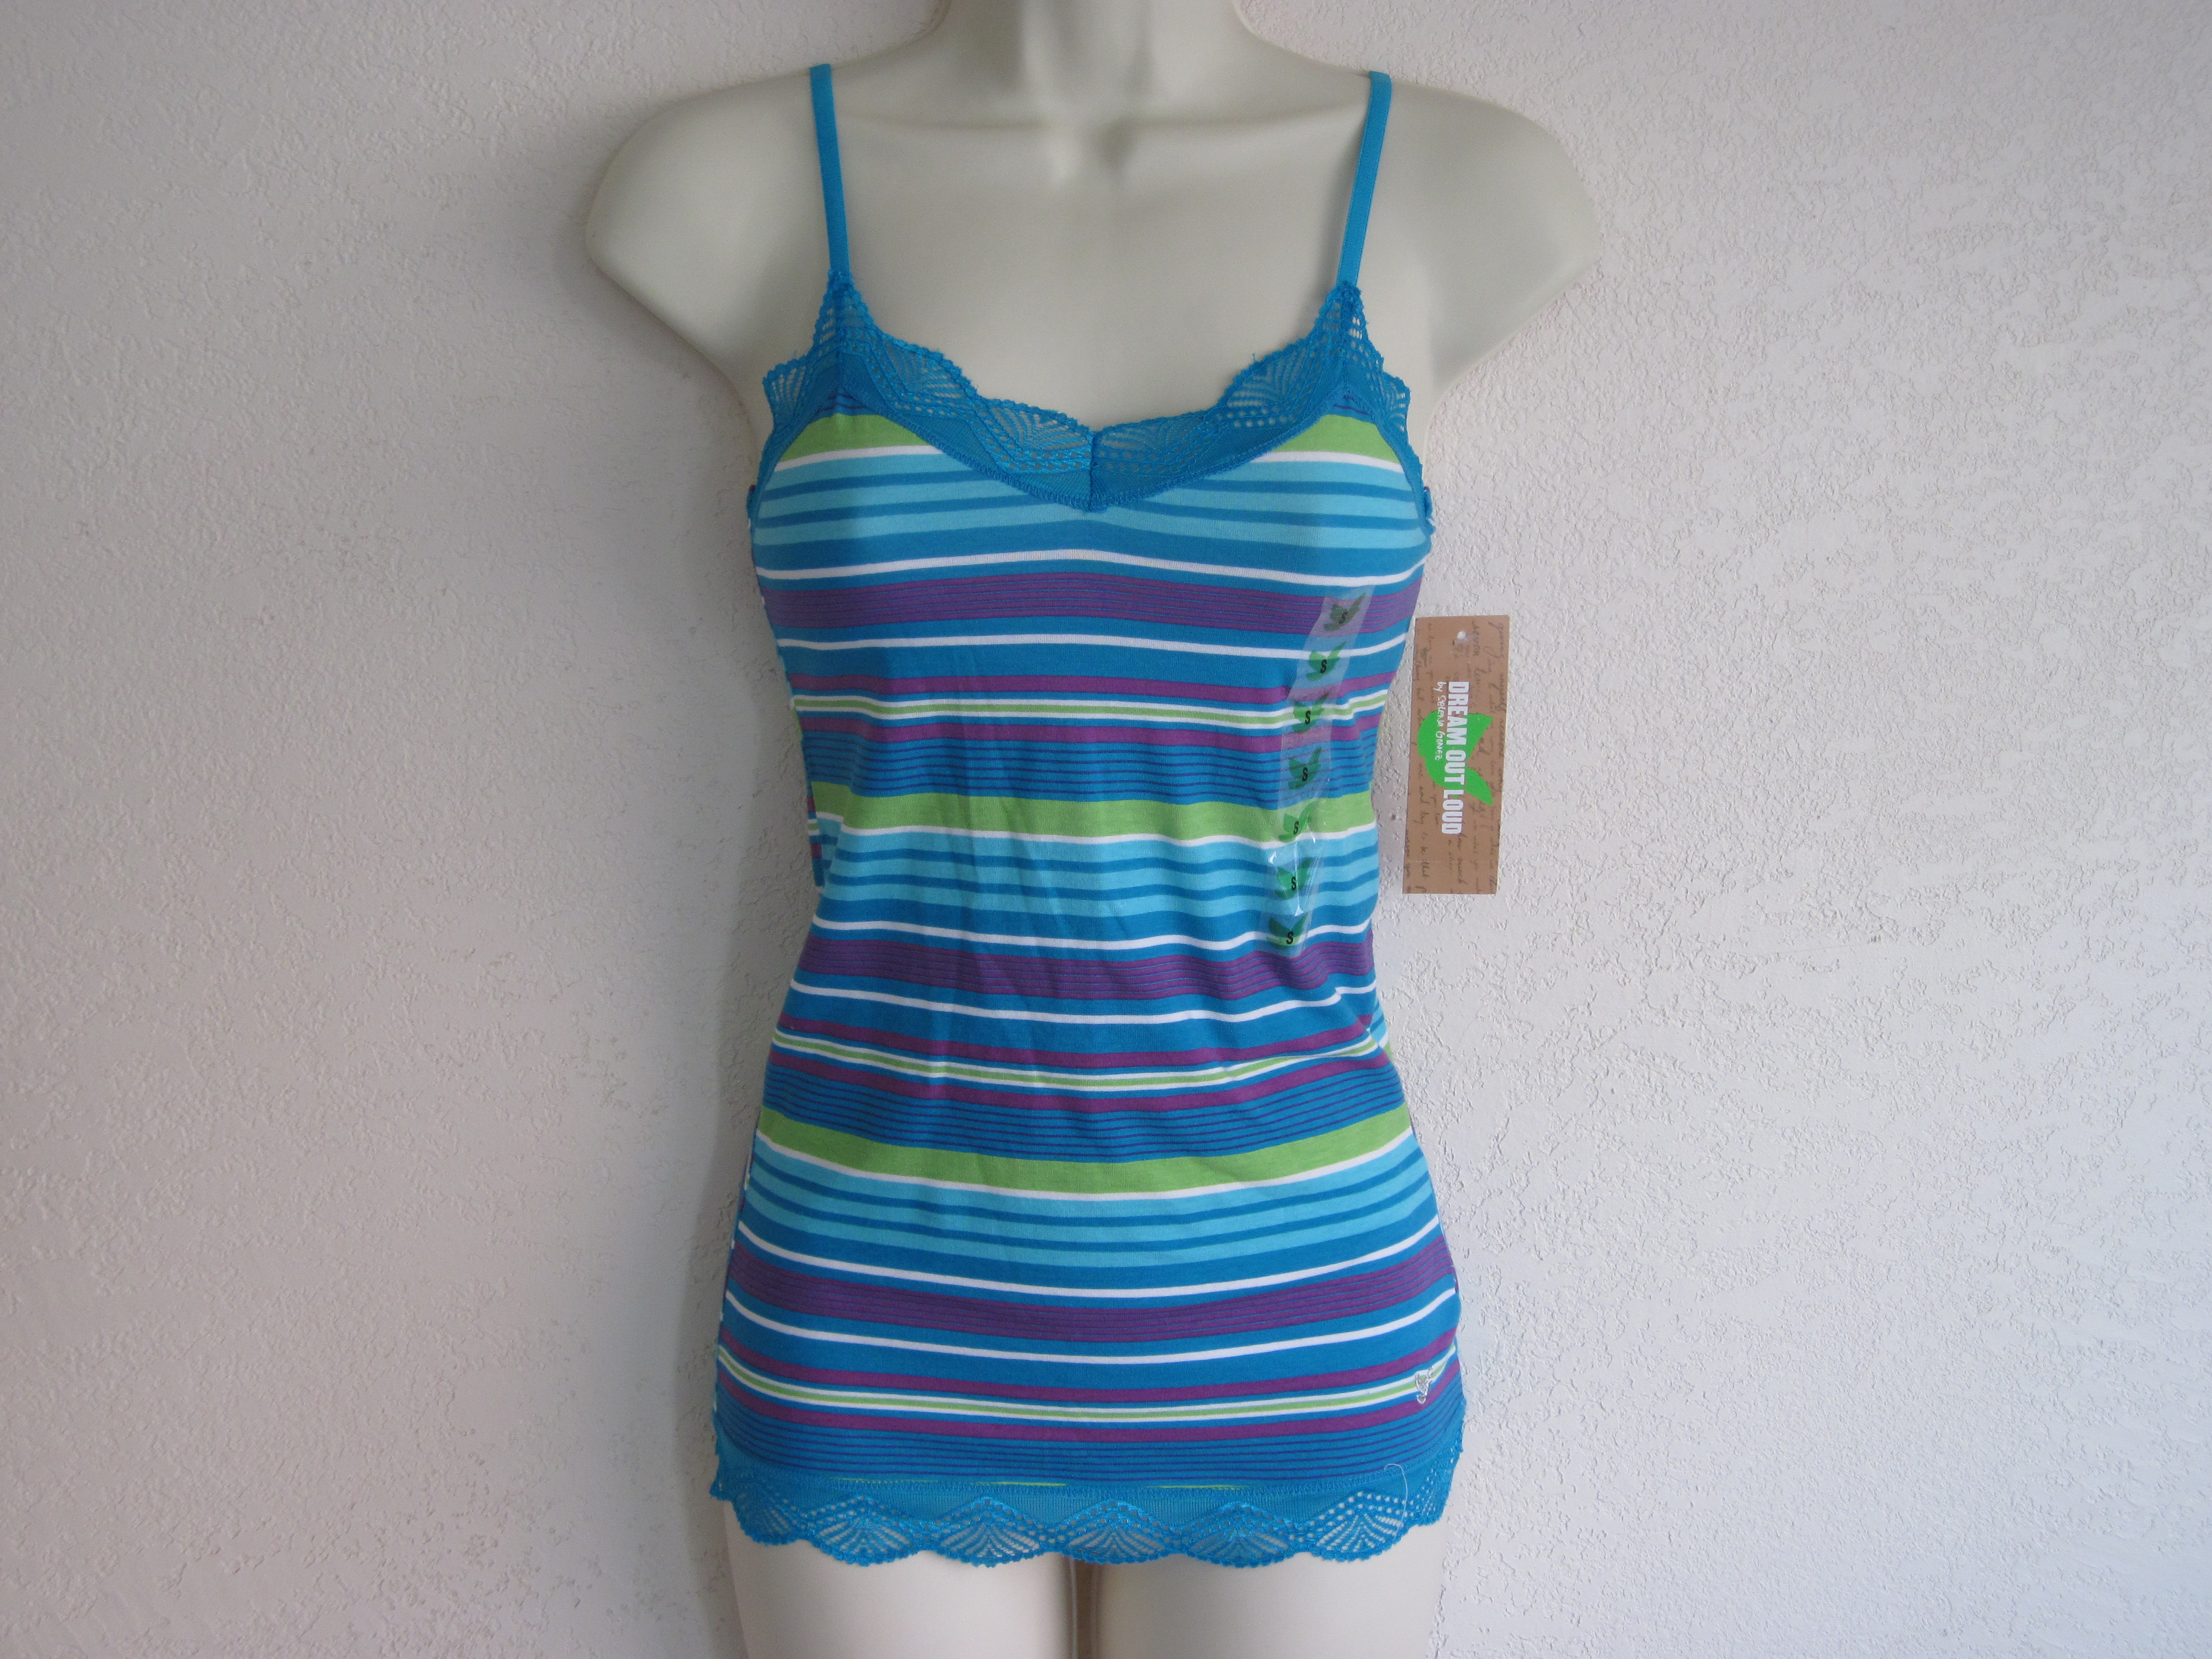 Dream Out Loud by Selena Gomez Striped Cami blue purple green